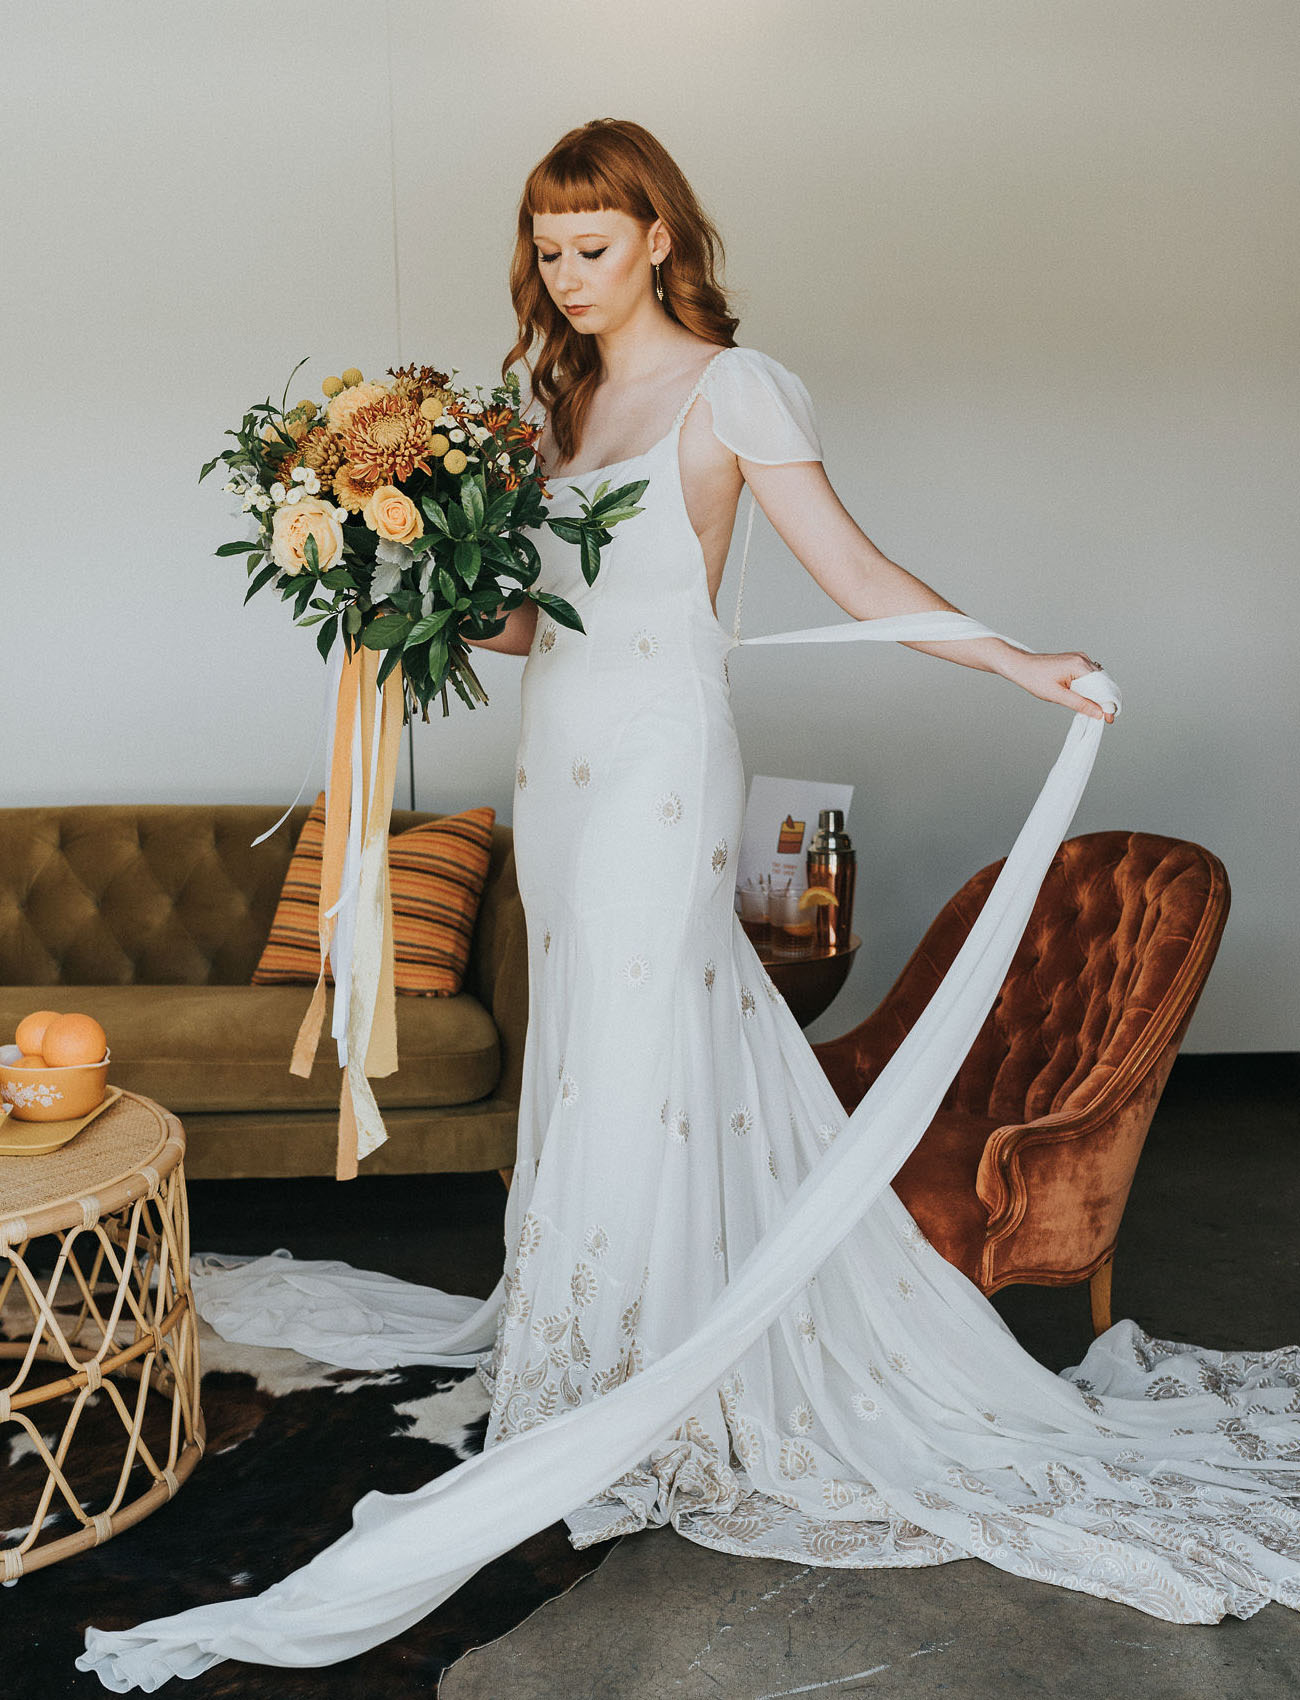 One bride was wearing a chic sheath wedding gown with a train and cap sleeves plus gold embroidery